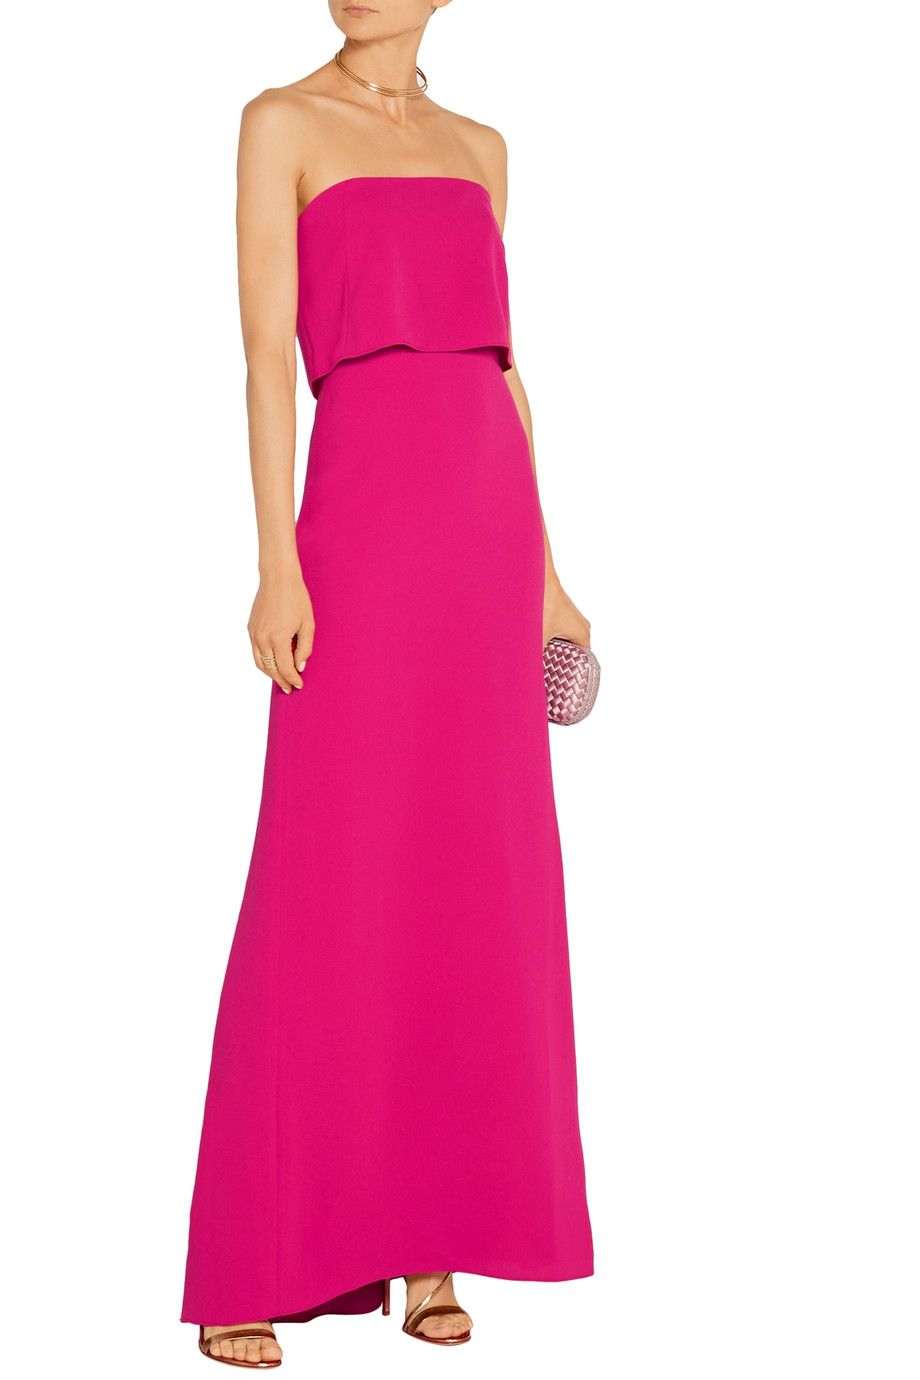 Shop on-sale Halston Heritage Strapless stretch-crepe gown. Browse ...